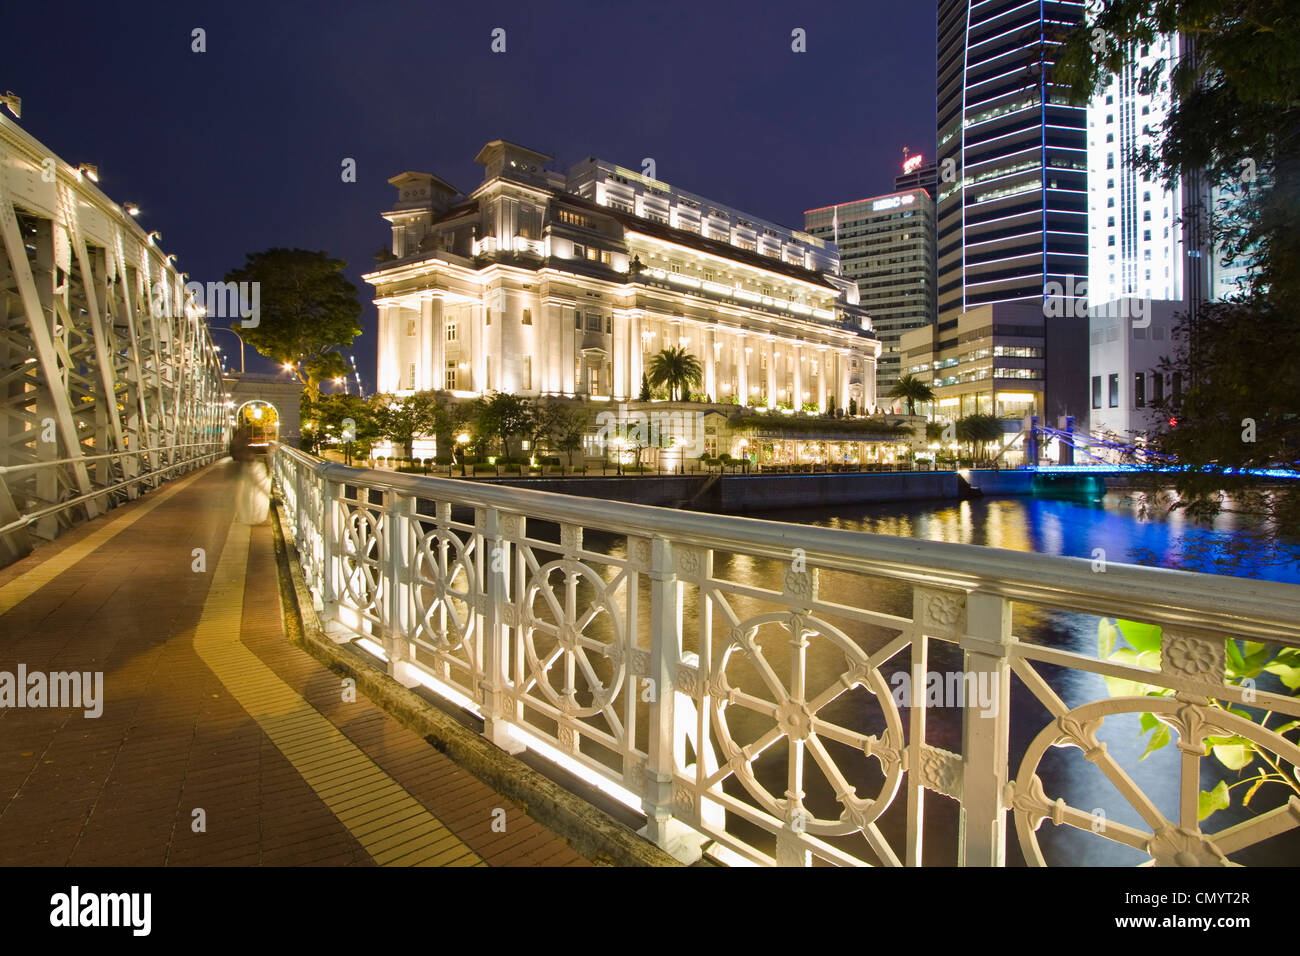 Cavenagh bridge, Fullerton Hotel, Skyline of Singapur, South East Asia, twilightStock Photo